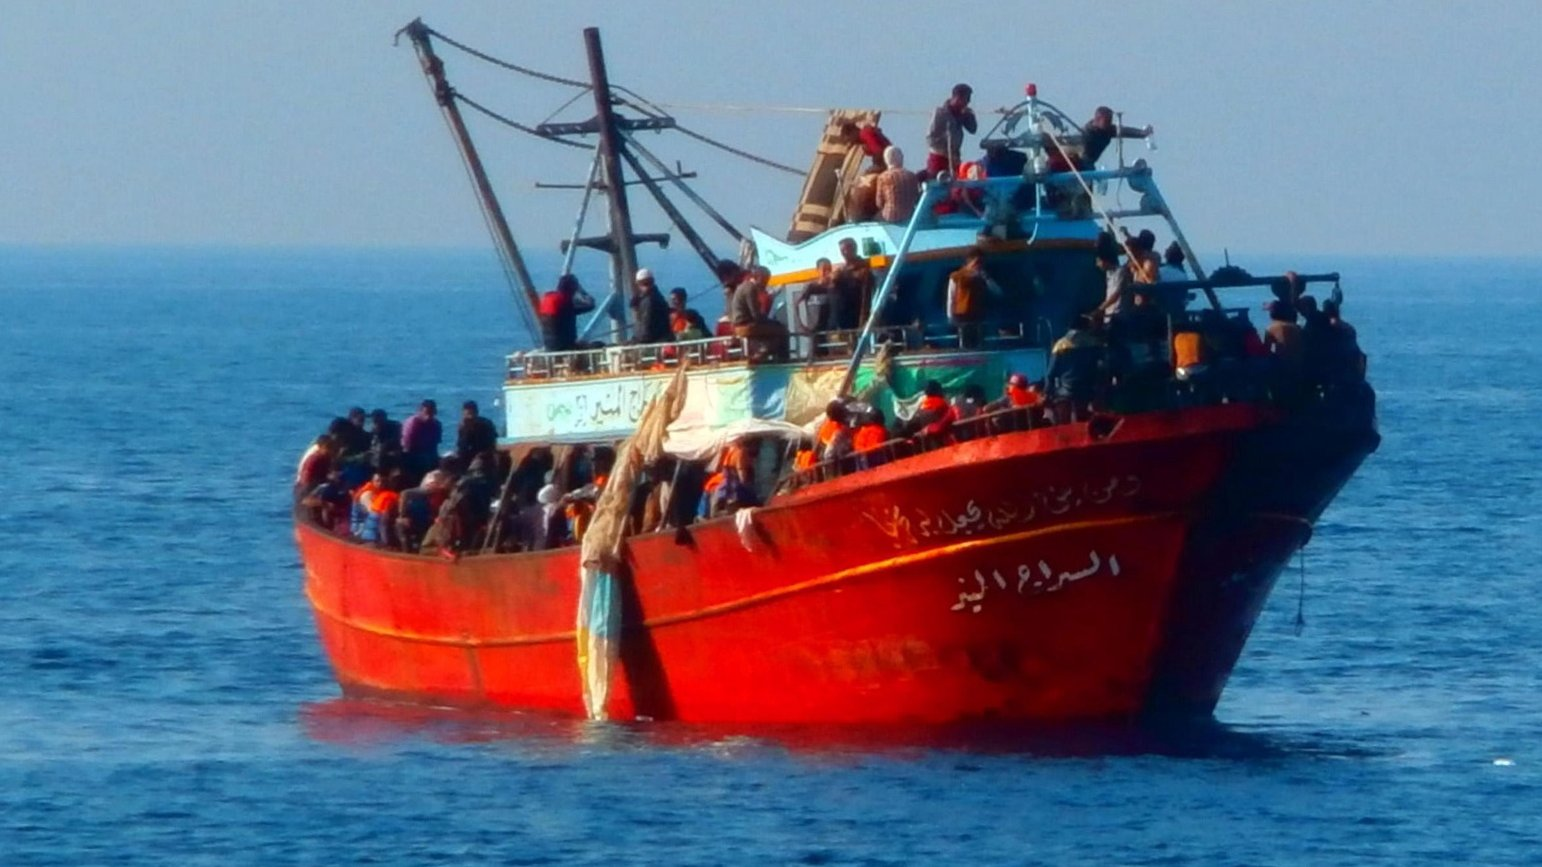 epa04255734 A handout picture released by the Italian Coast Guard shows a boat carrying 281 refugees, at sea off the coast of Calabria Region, Italy, 14 June 2014.  Nearly 300 migrants who said they were refugees from Syria have been rescued off the Italian coast, officials. The coast guard said two patrol boats and a a tax police vessel picked up 281 people from a 20-metre fishing boat some 150 kilometres away from the coast of Calabria, the region that forms the tip of Italy's boot. The migrants were spotted in the Mediterranean between Greece and Italy. Among the rescued passengers were 93 children and six women, some of who were in a precarious medical condition, the coast guard said.  EPA/ITALIAN COASTGUARD / HANDOUT  HANDOUT EDITORIAL USE ONLY/NO SALES/NO ARCHIVES